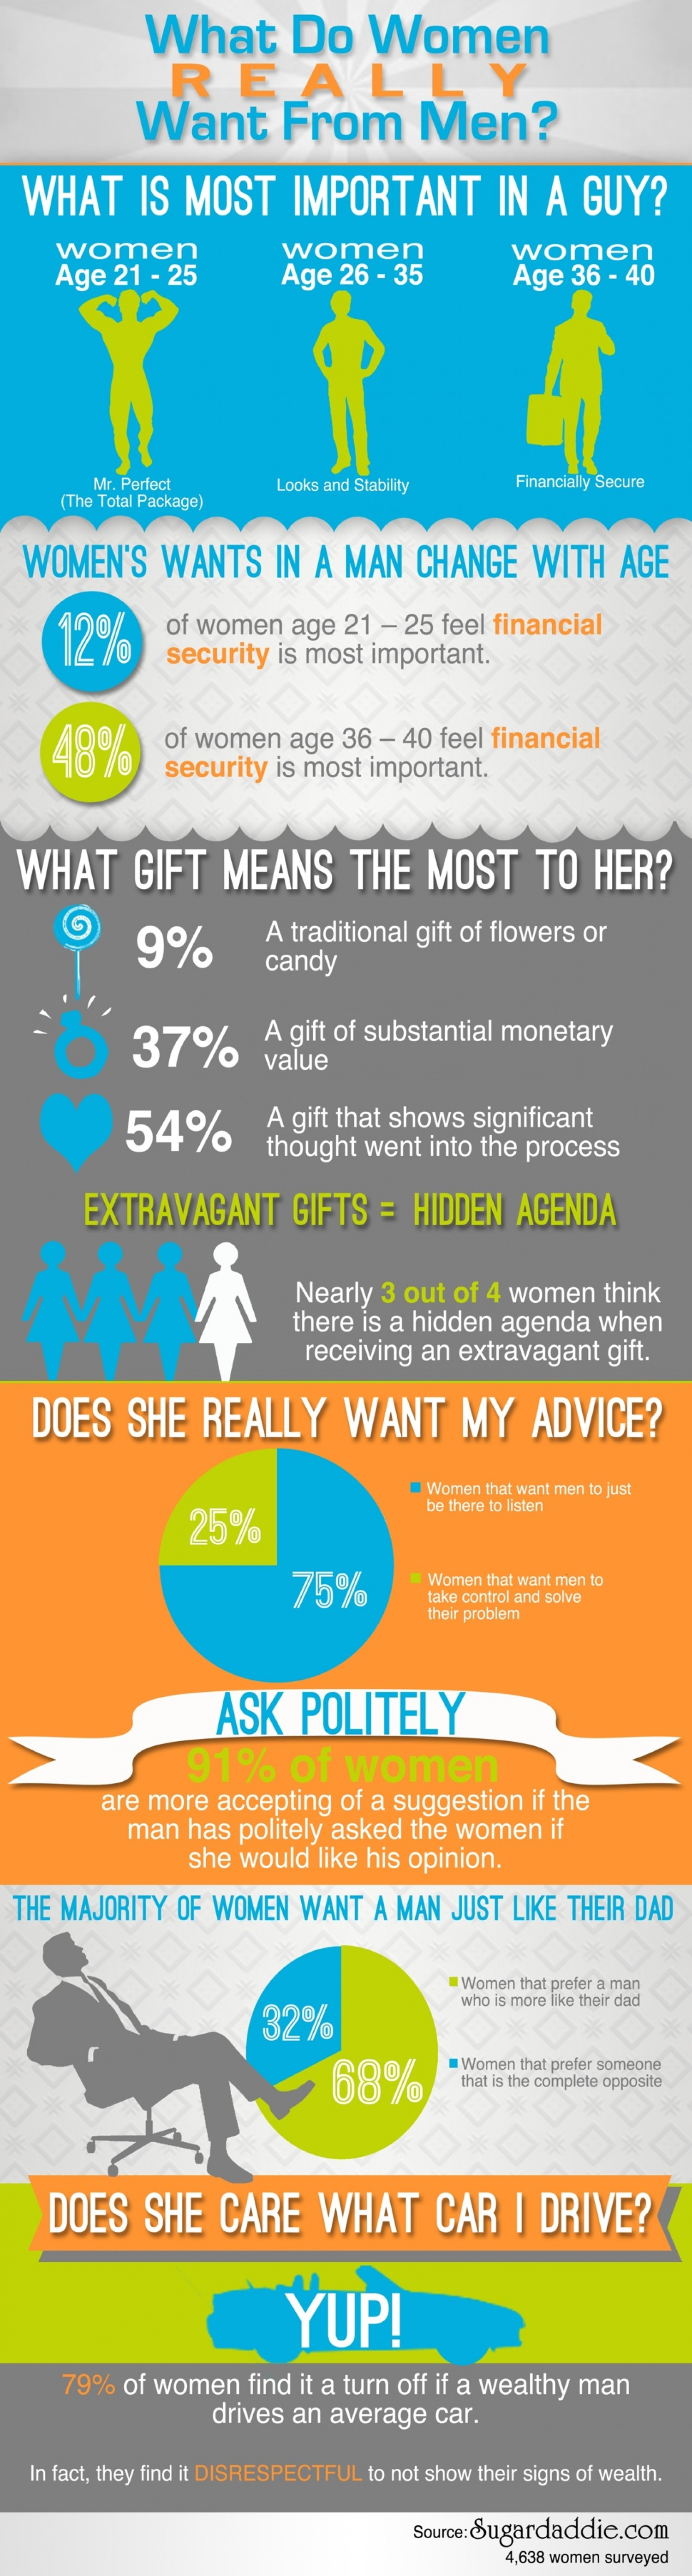 8. What do women really want from men